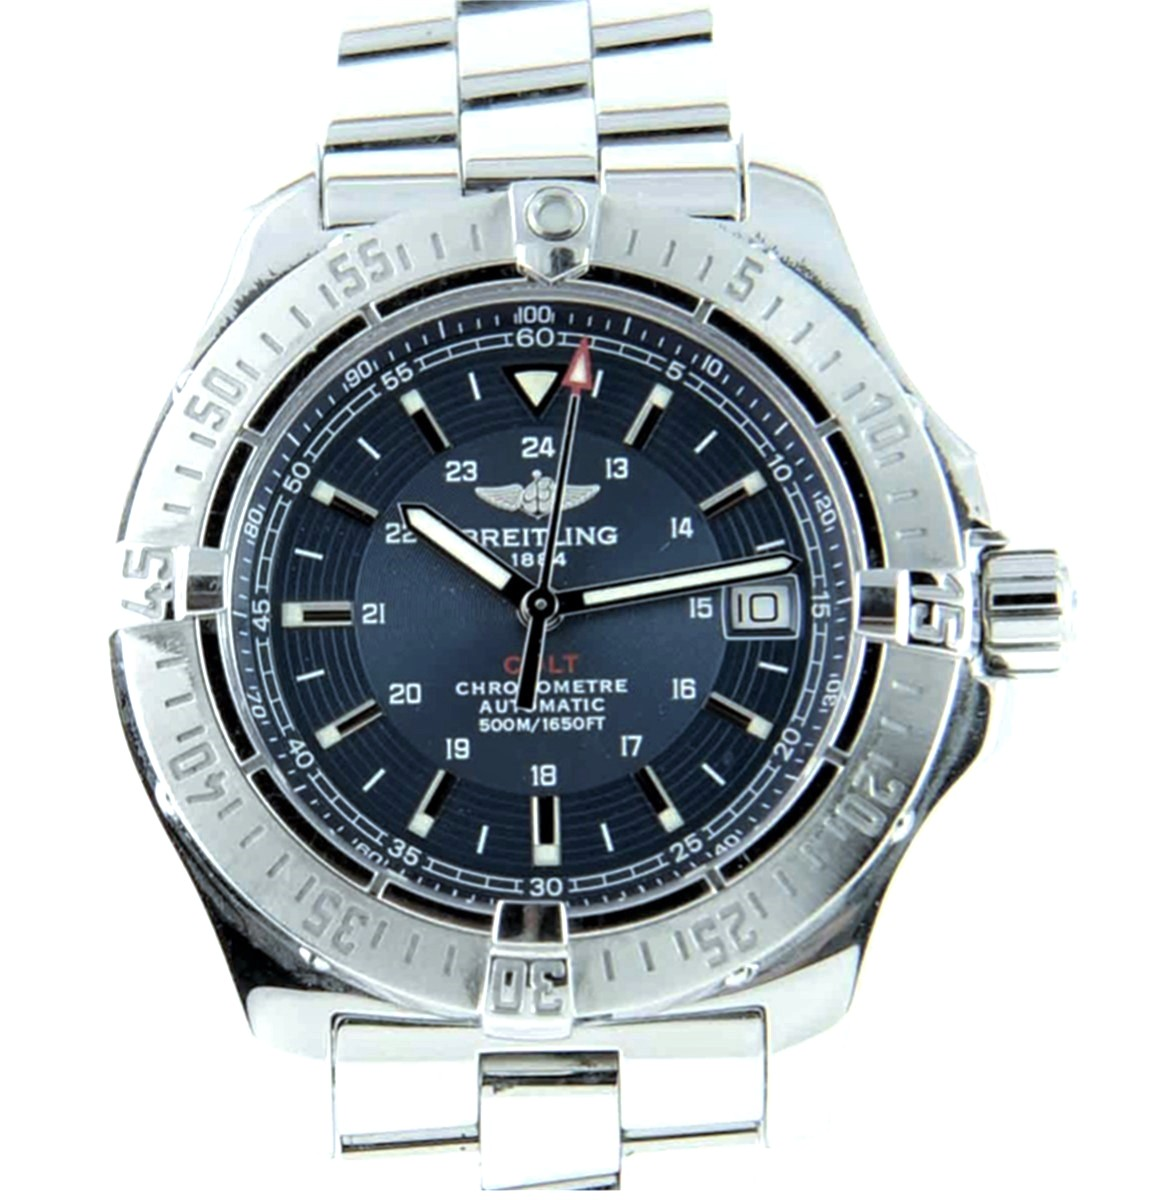 Breitling 41mm Colt Automatic Blue Dial Ref: A17380